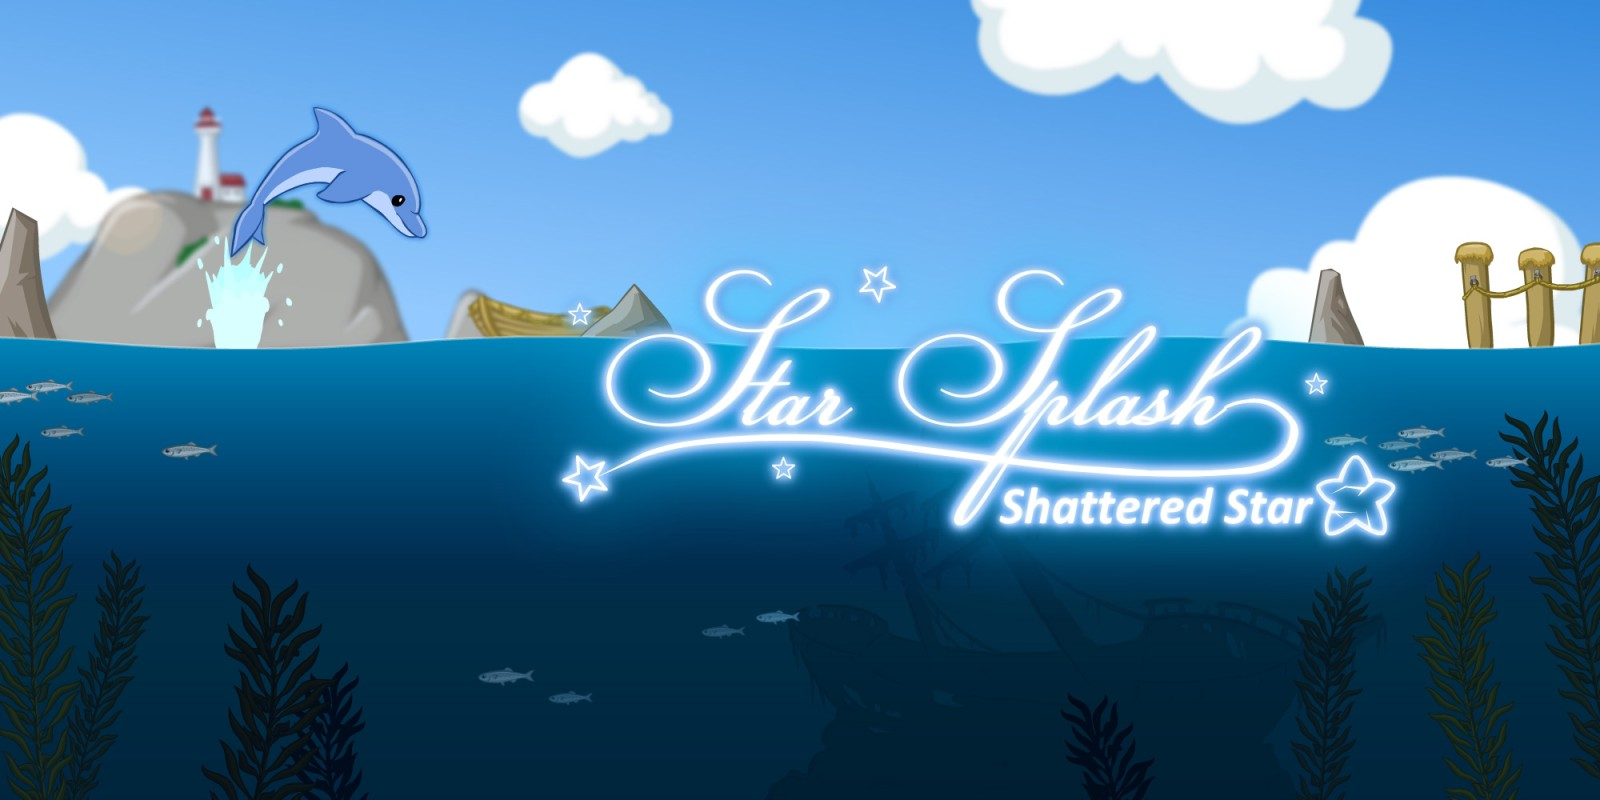 Star Splash: Shattered Star